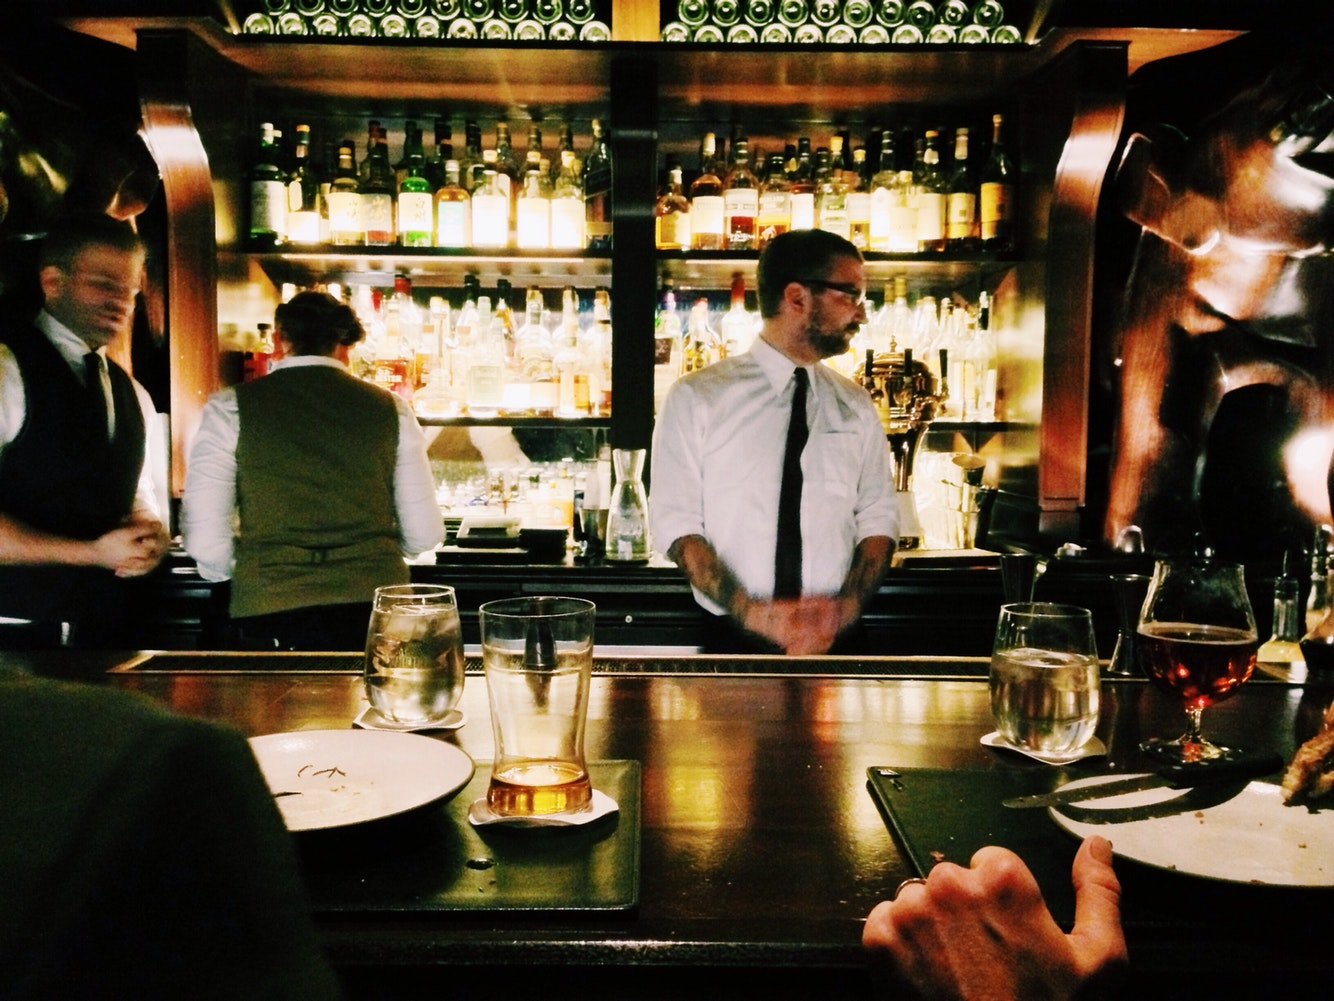 a restaurant manager's perspective